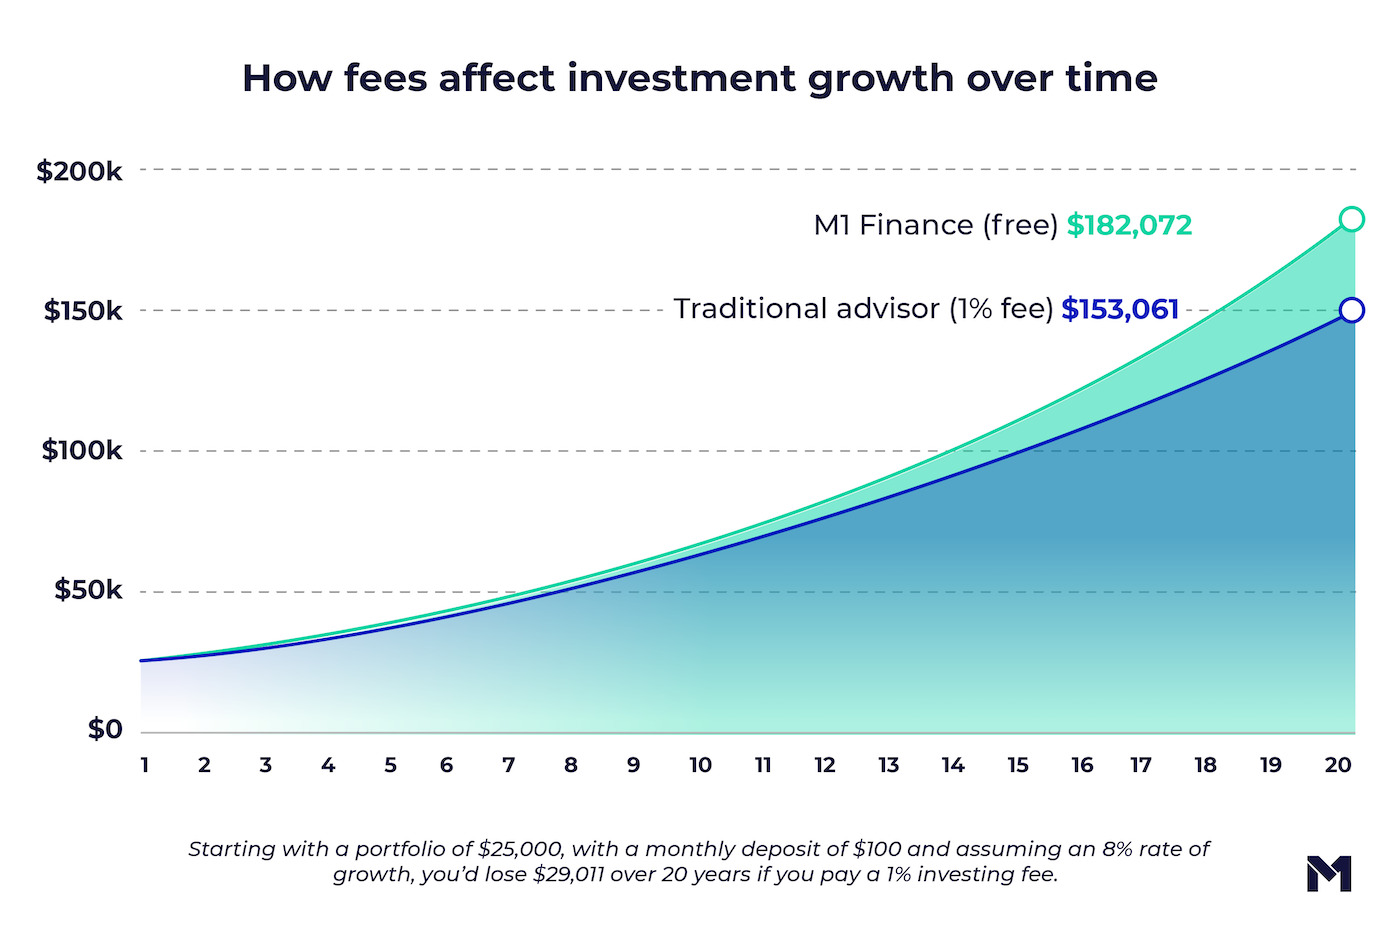 graph on how fees affect investment growth over time